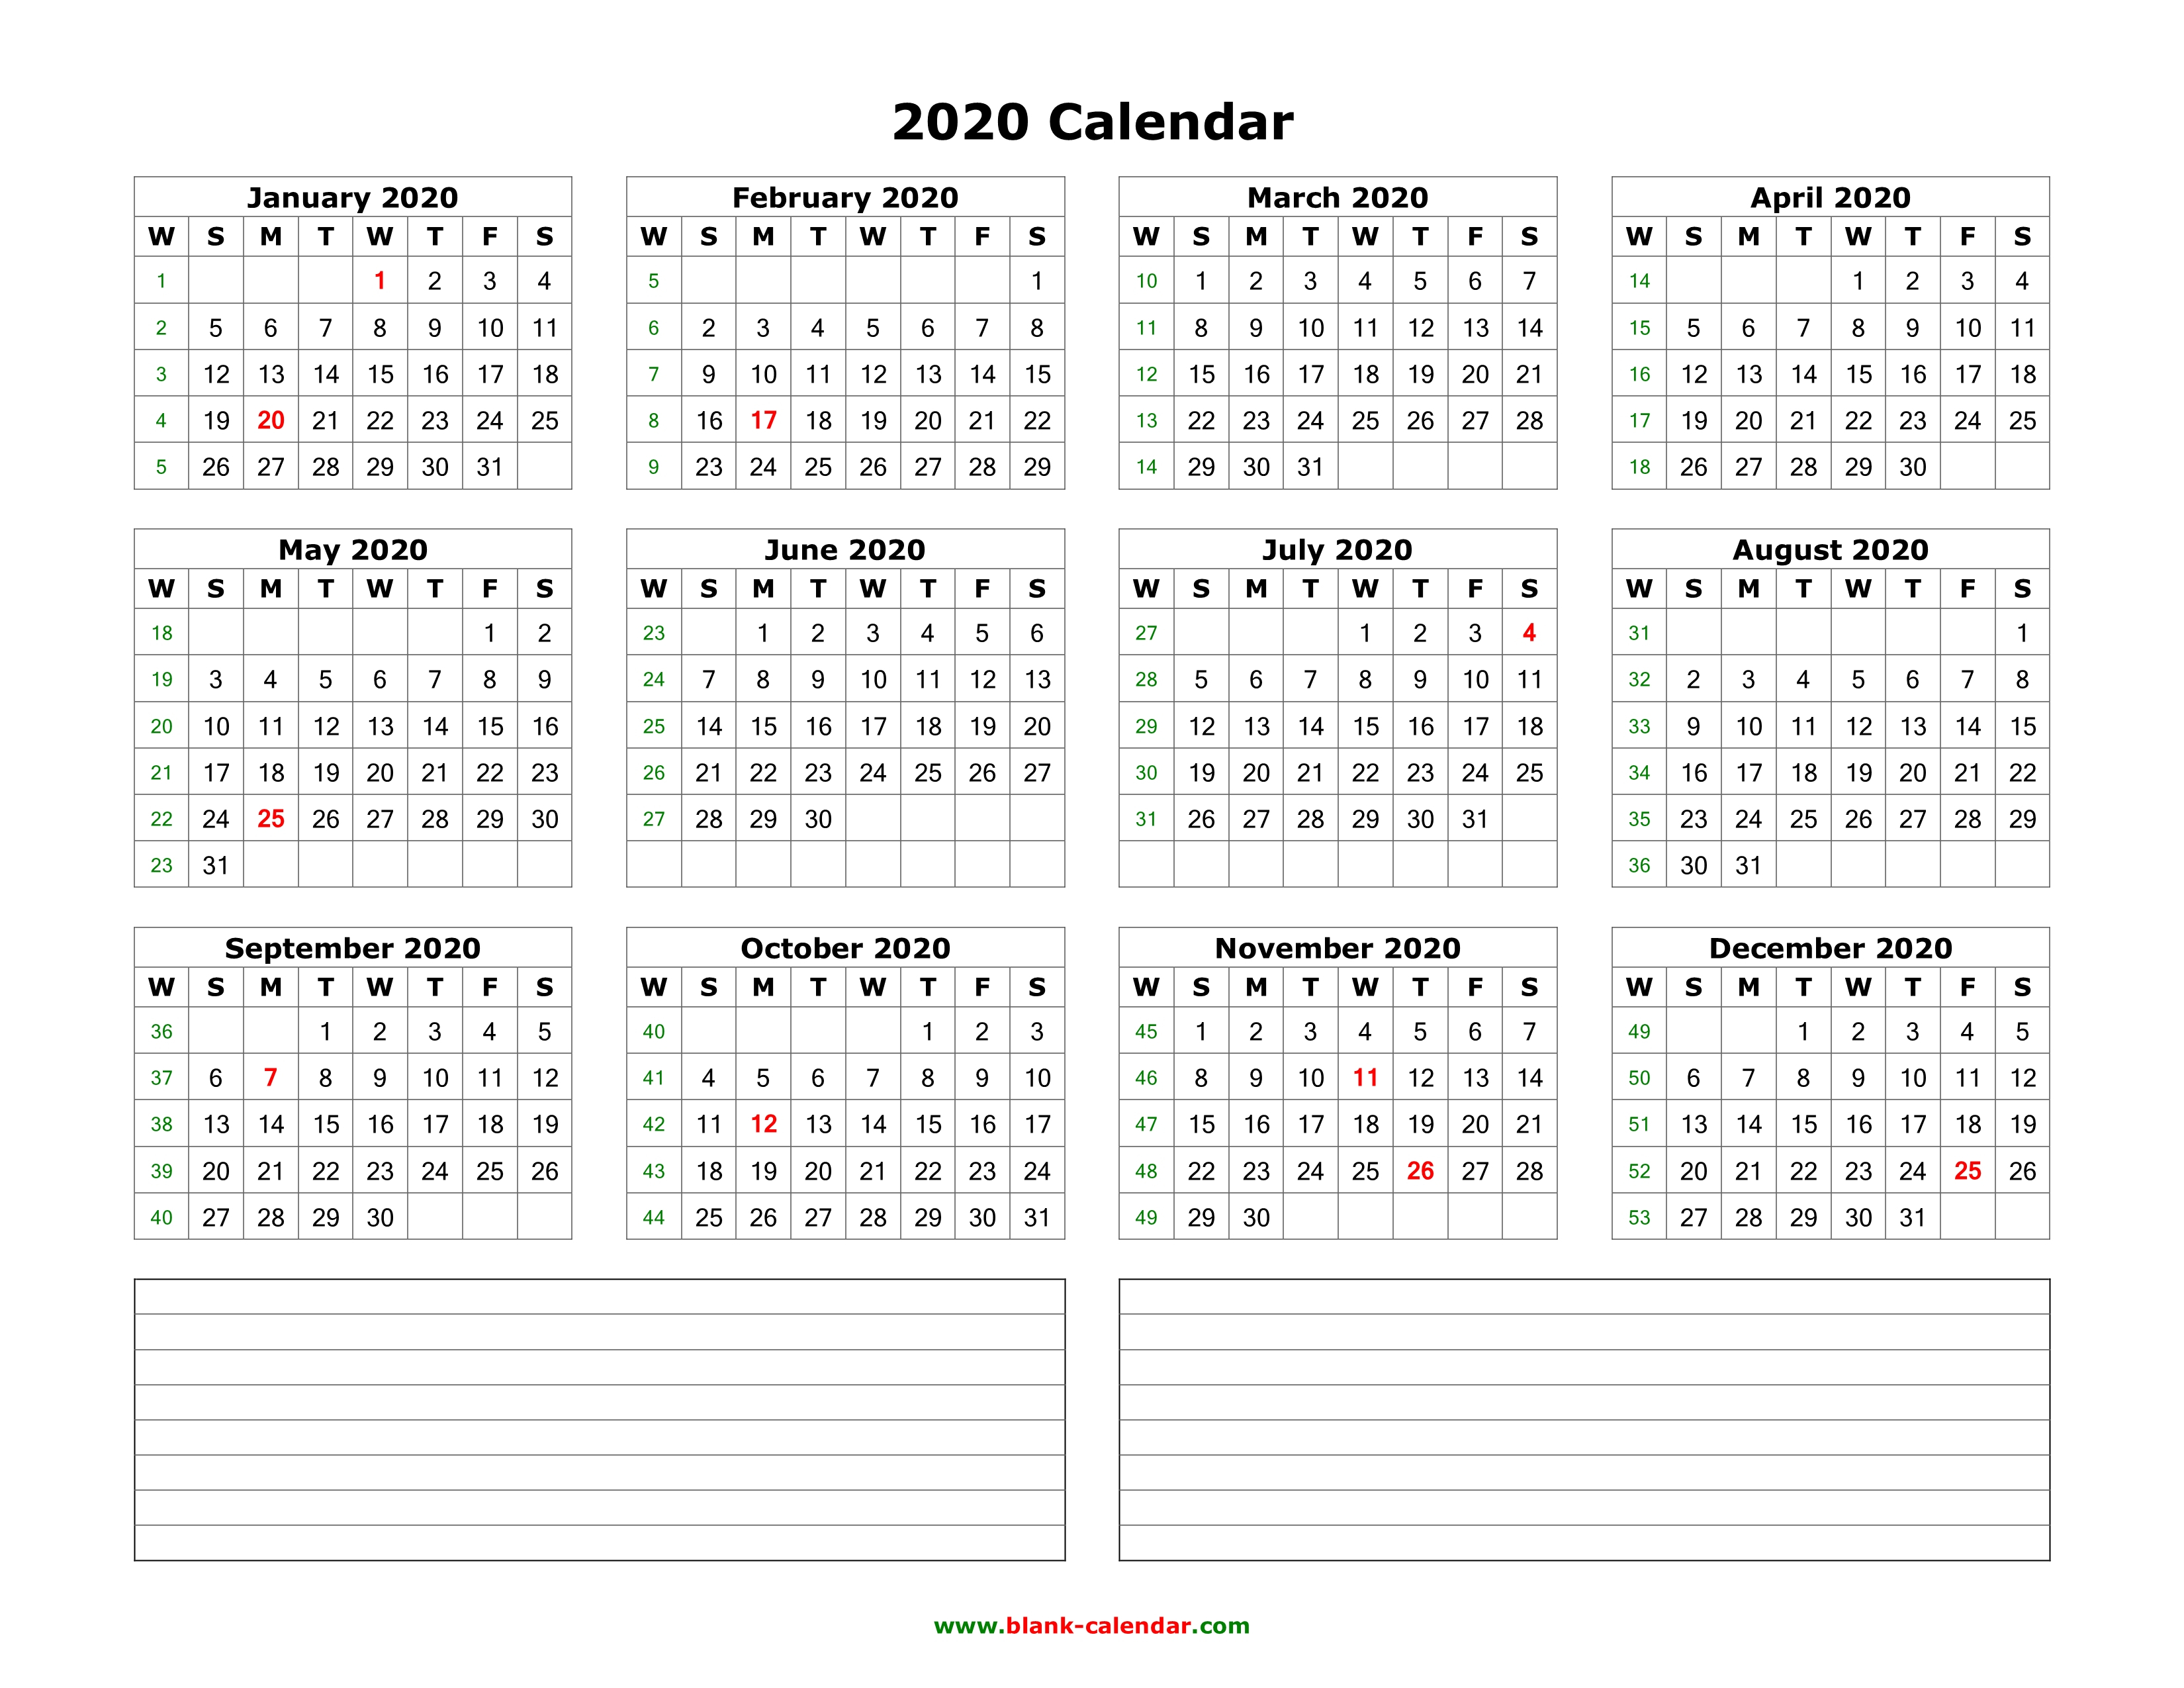 Download Blank Calendar 2020 With Space For Notes (12 Months On One inside Free Calendar 2020 Dont Have To Download